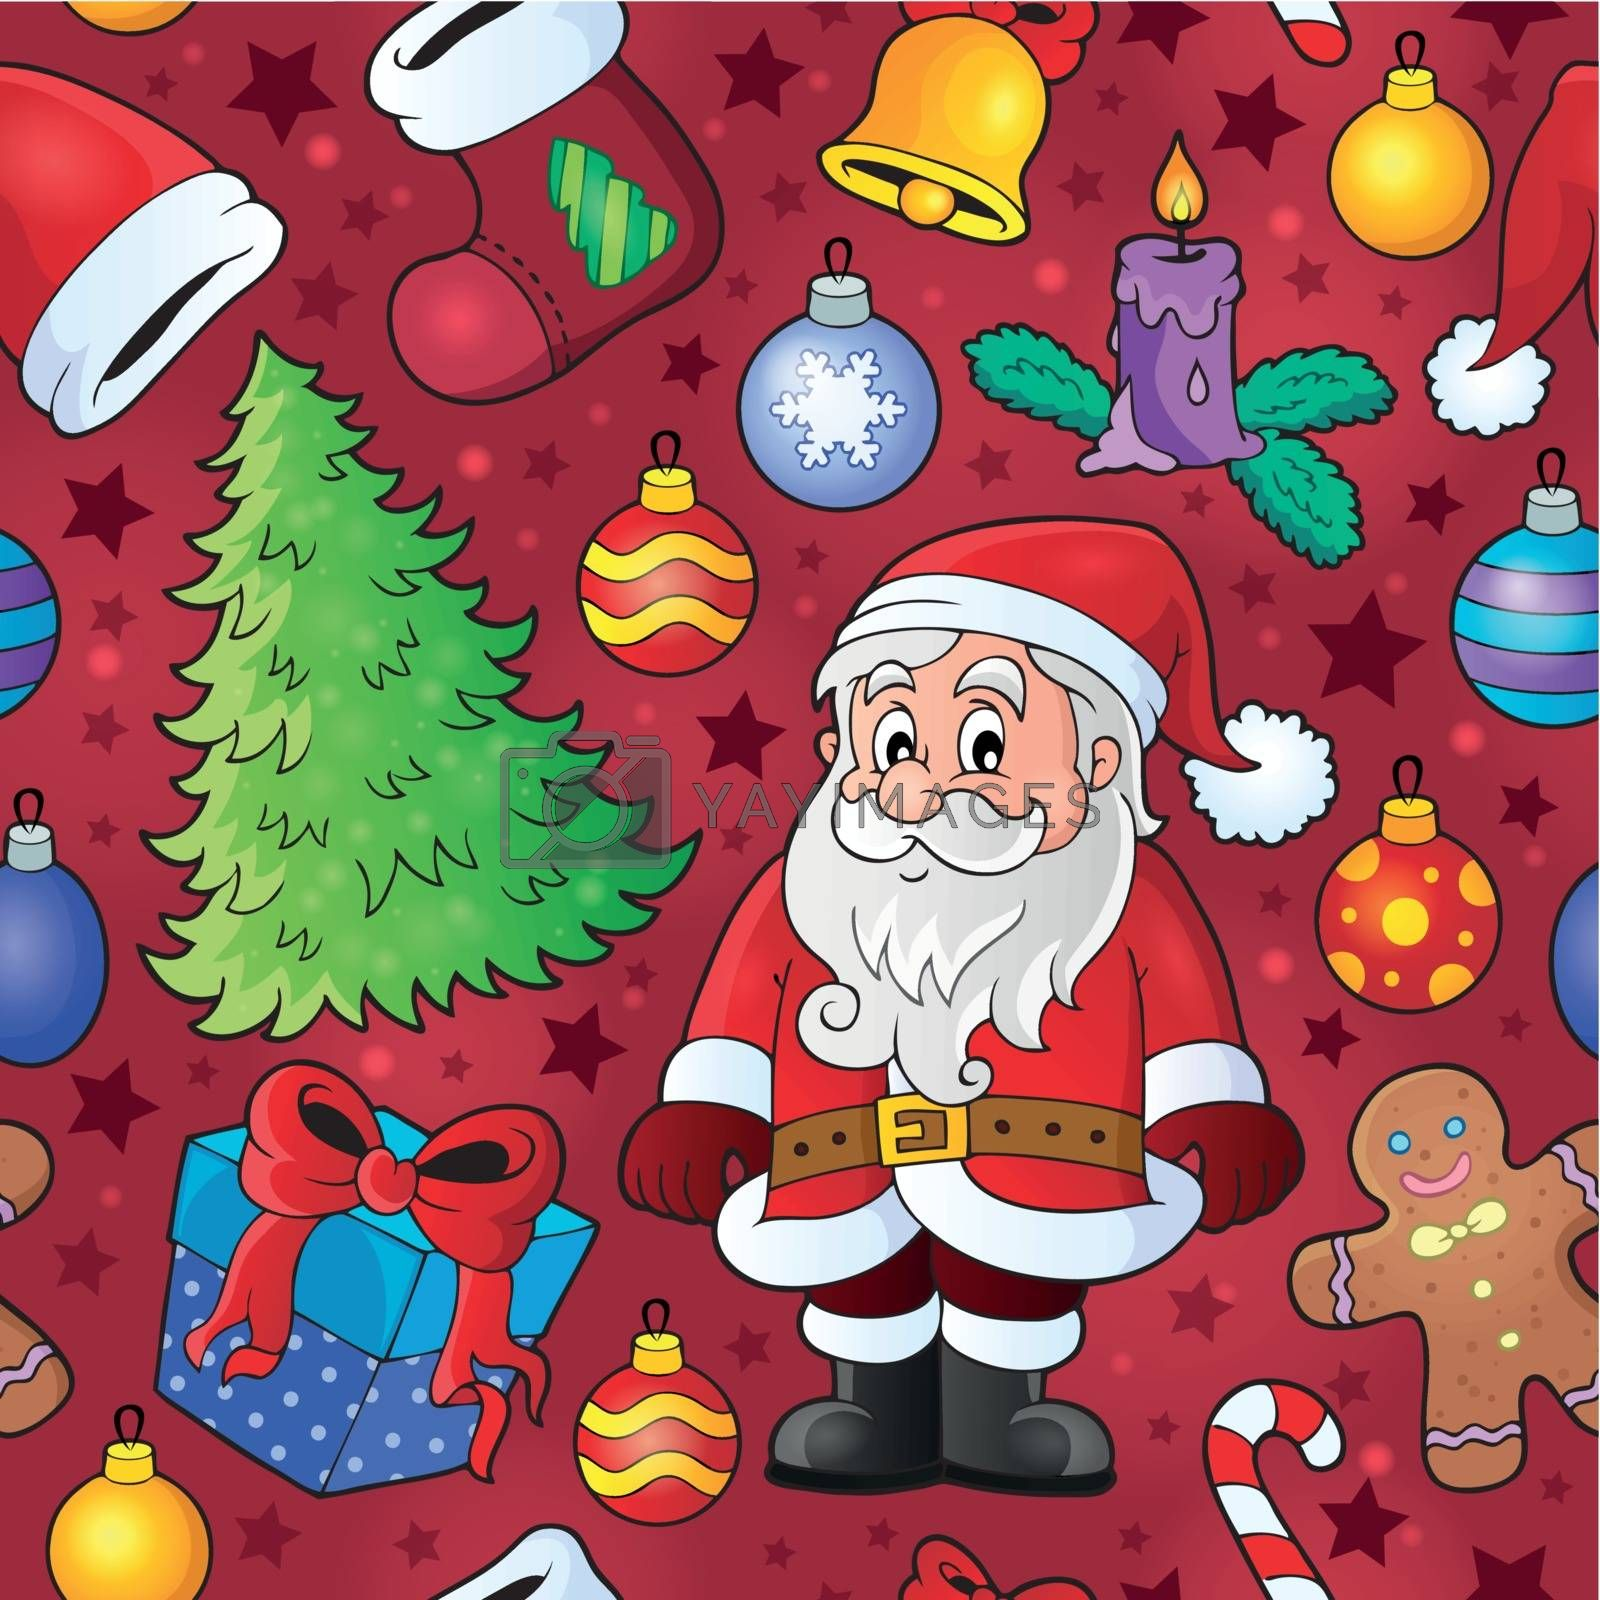 Christmas seamless background 7 - eps10 vector illustration.